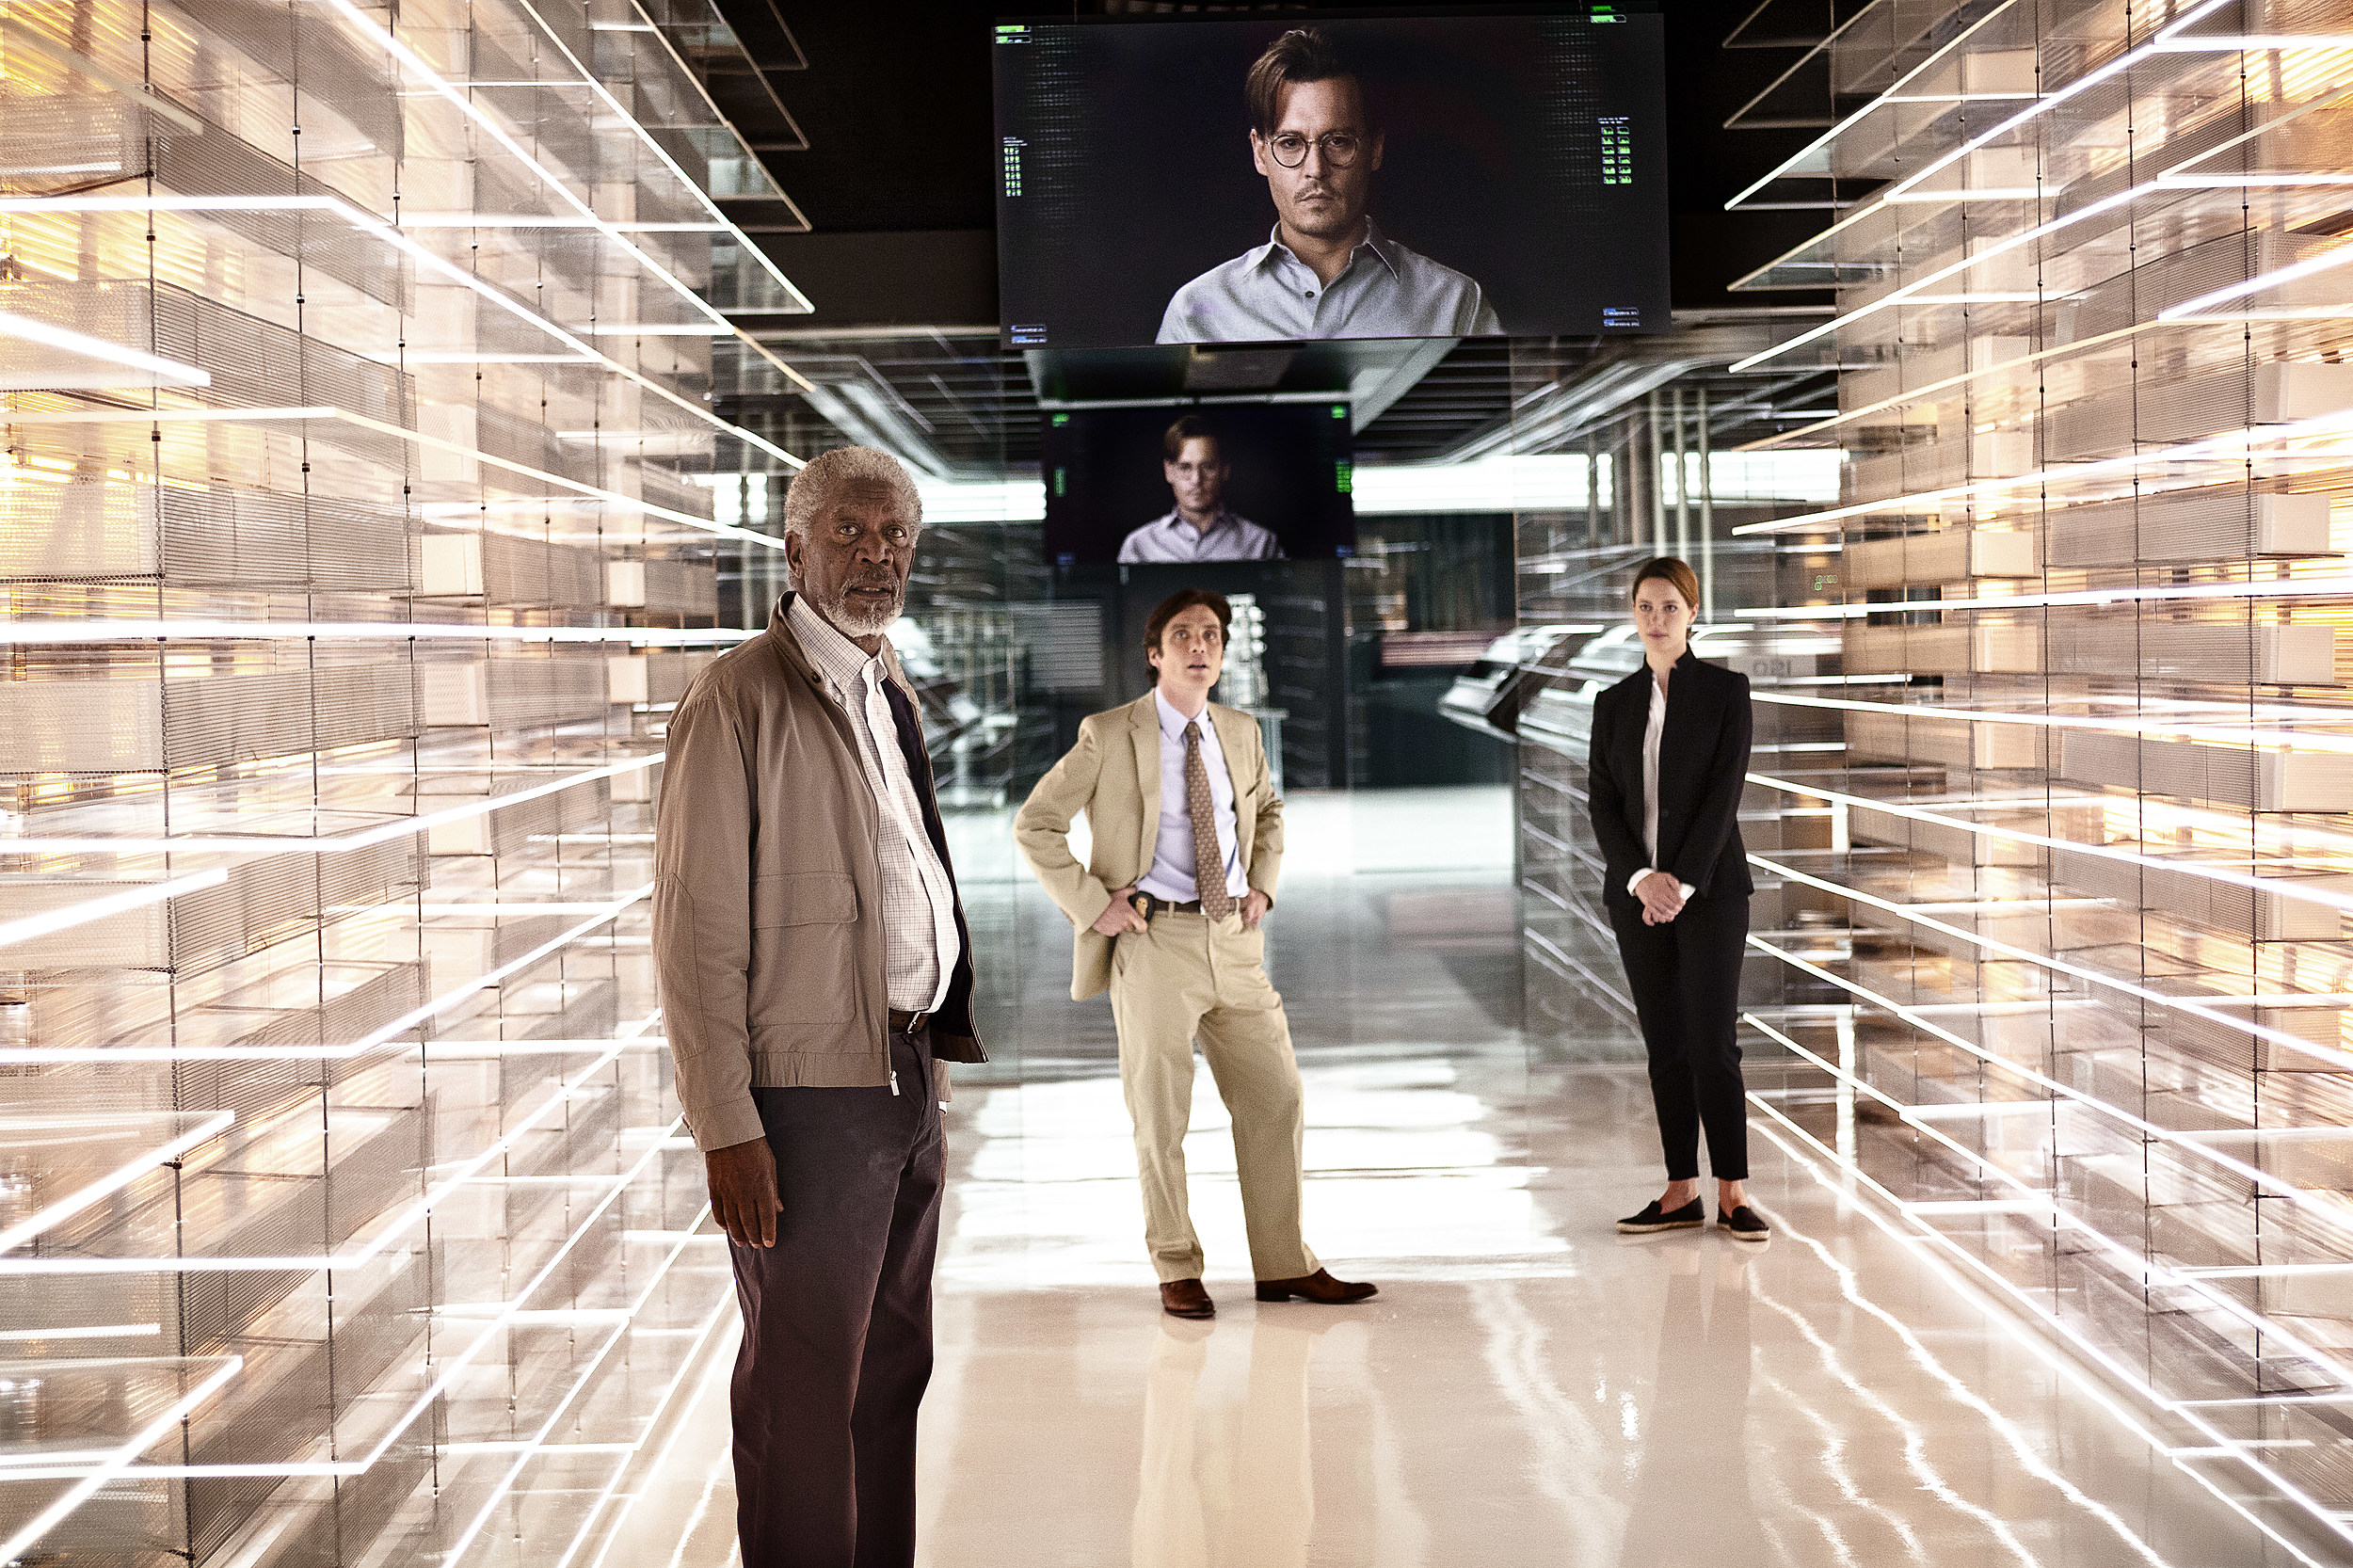 TRANSCENDENCE Photos First Look